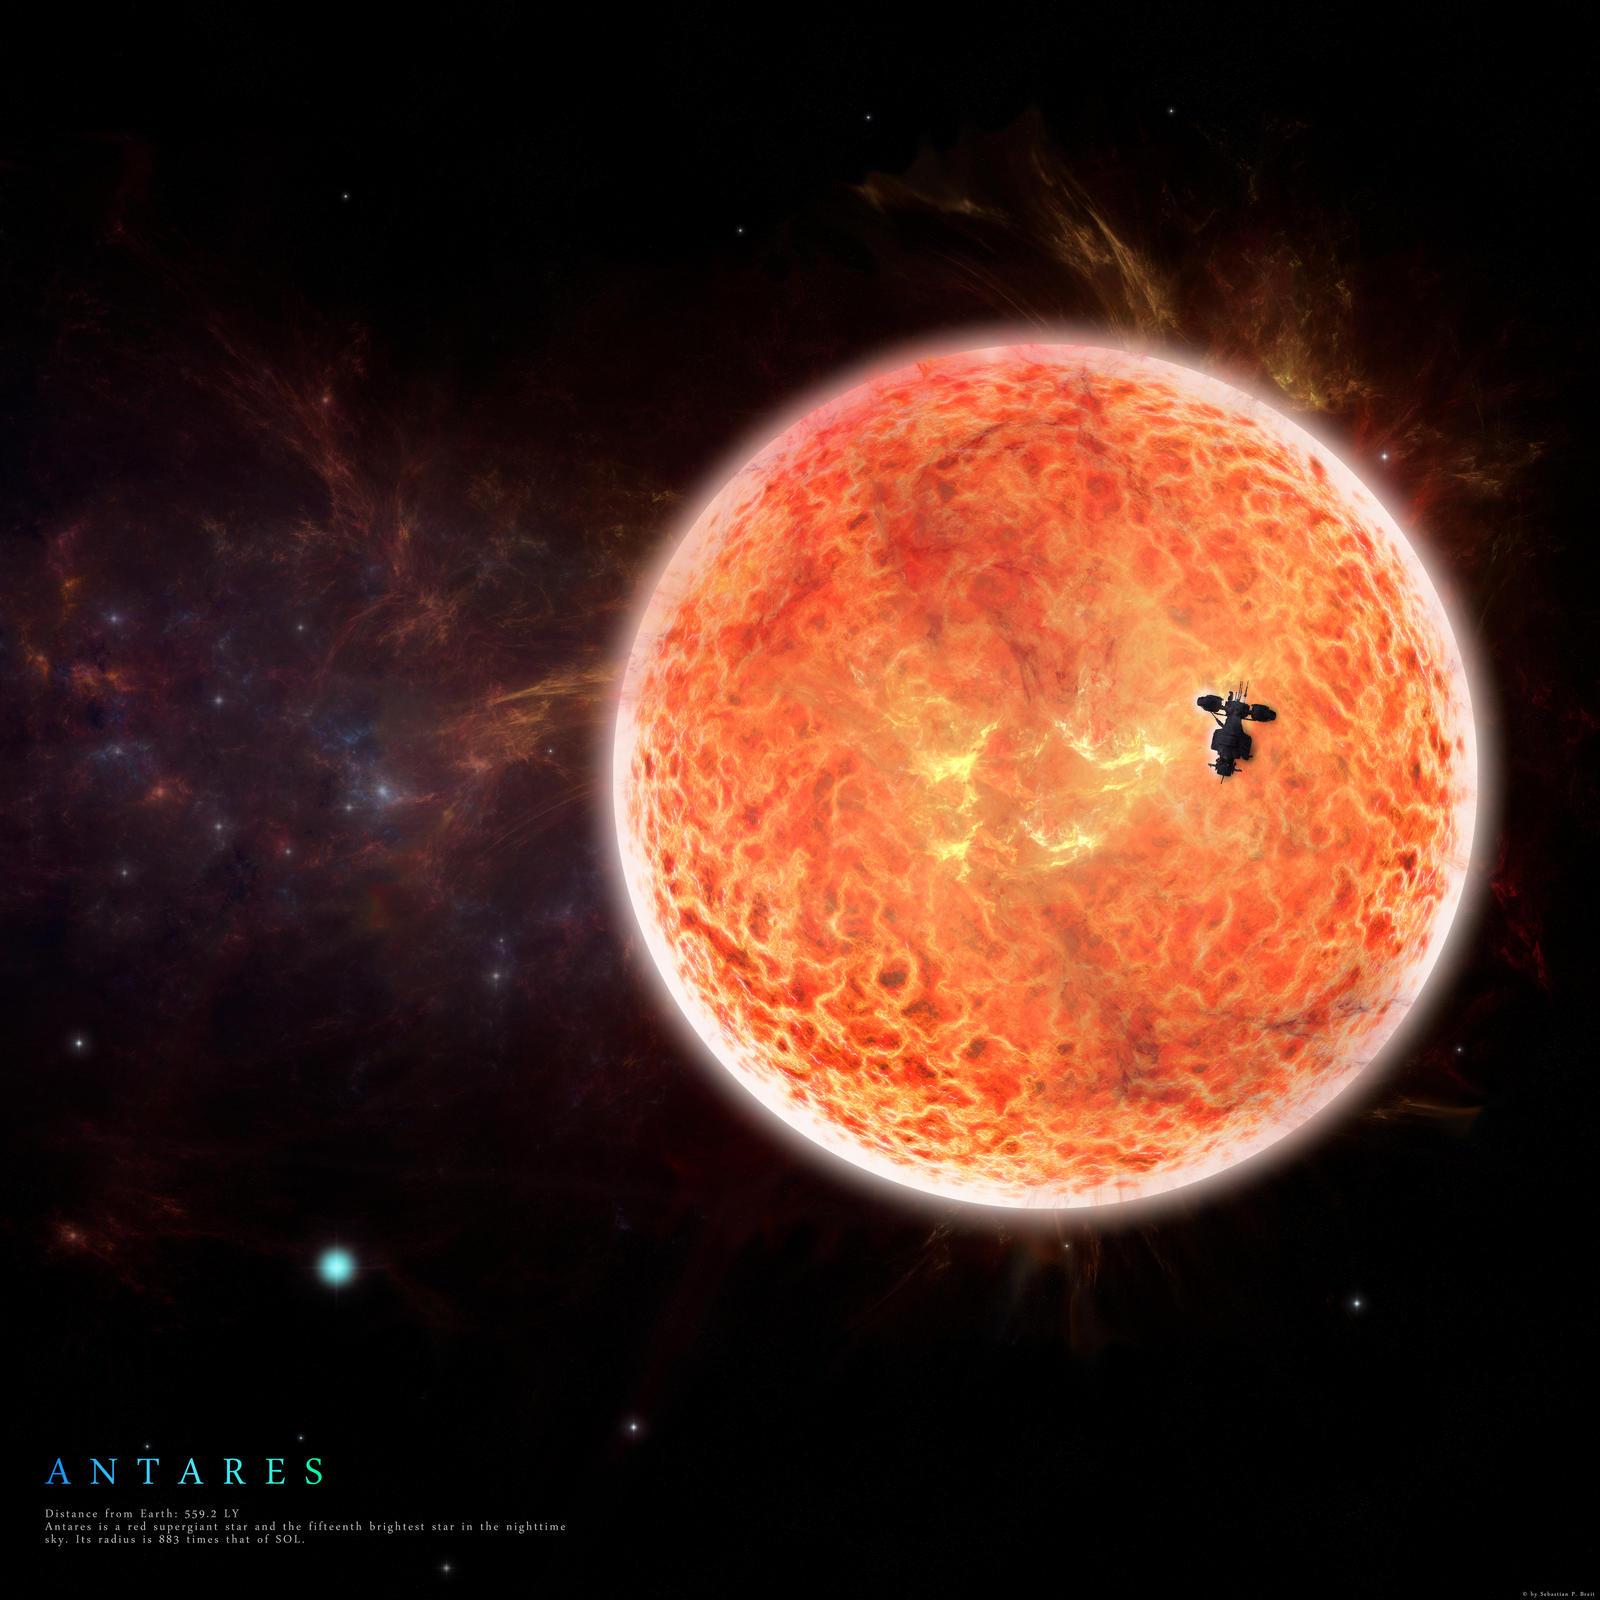 The Watcher of Antares